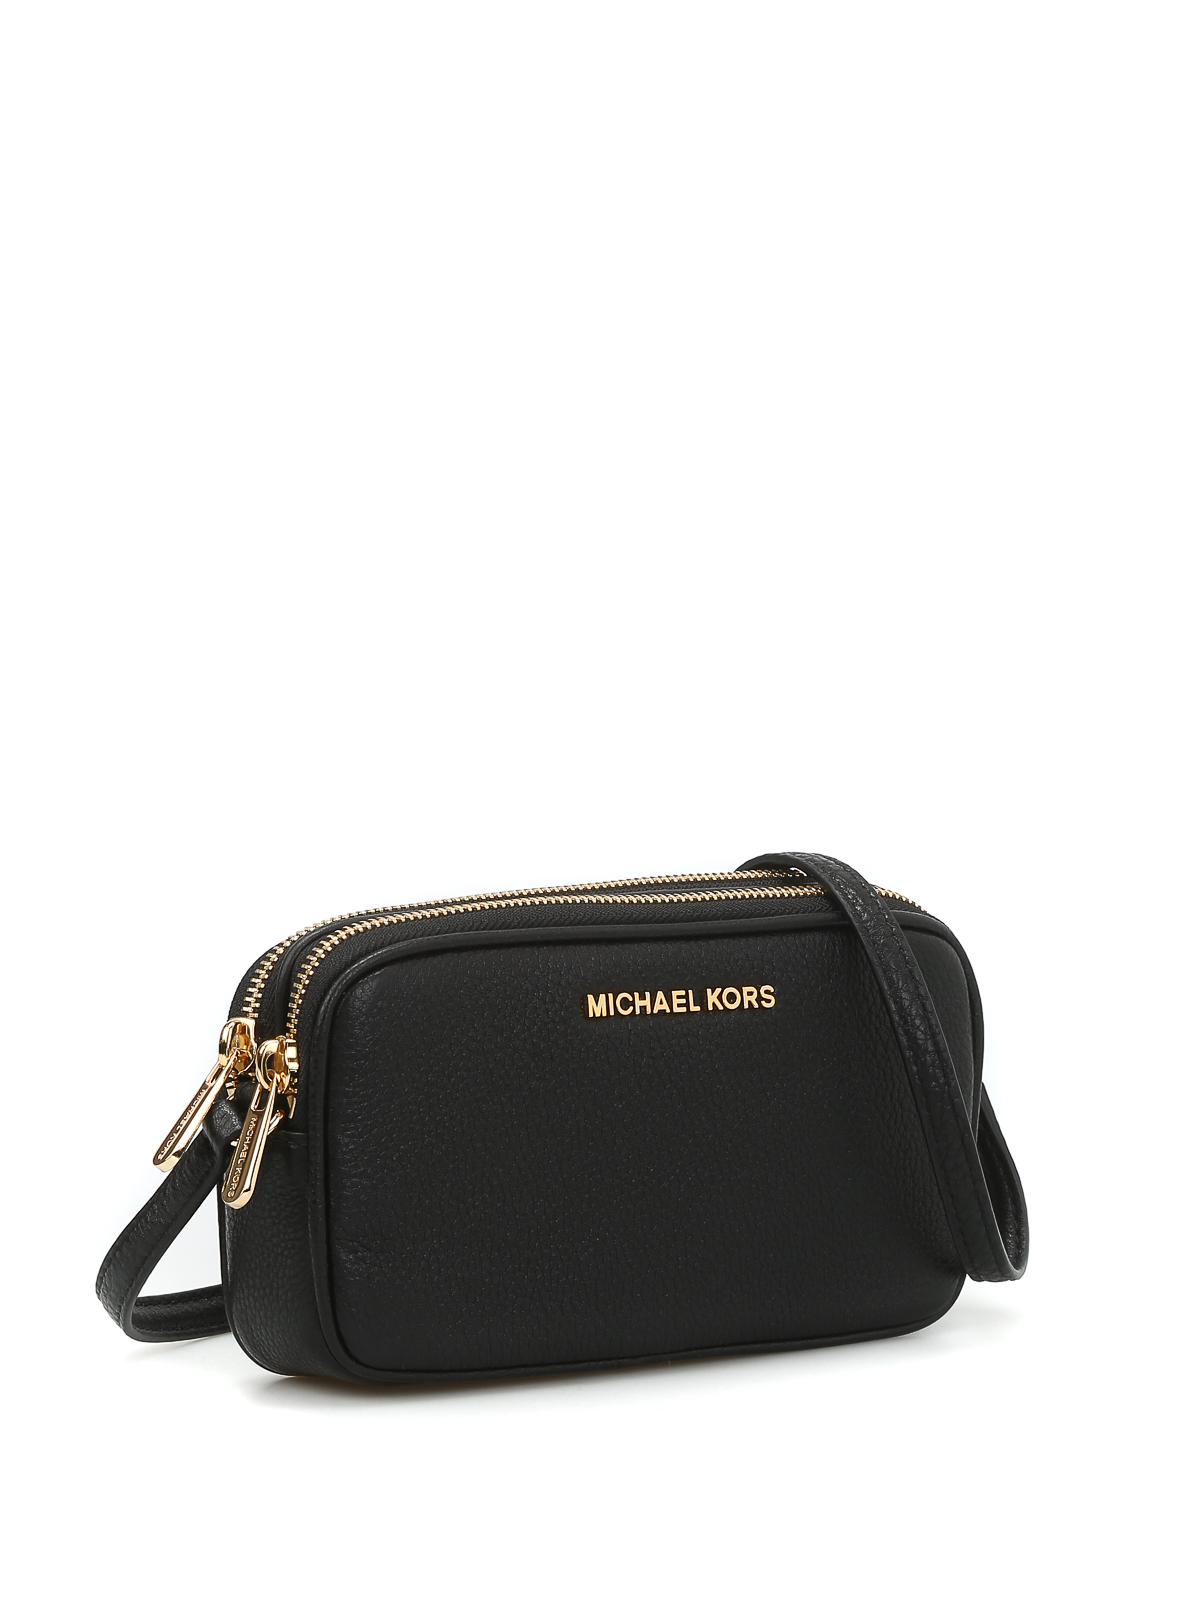 9adc855e0a0a MICHAEL KORS  cross body bags online - Bedford medium crossbody